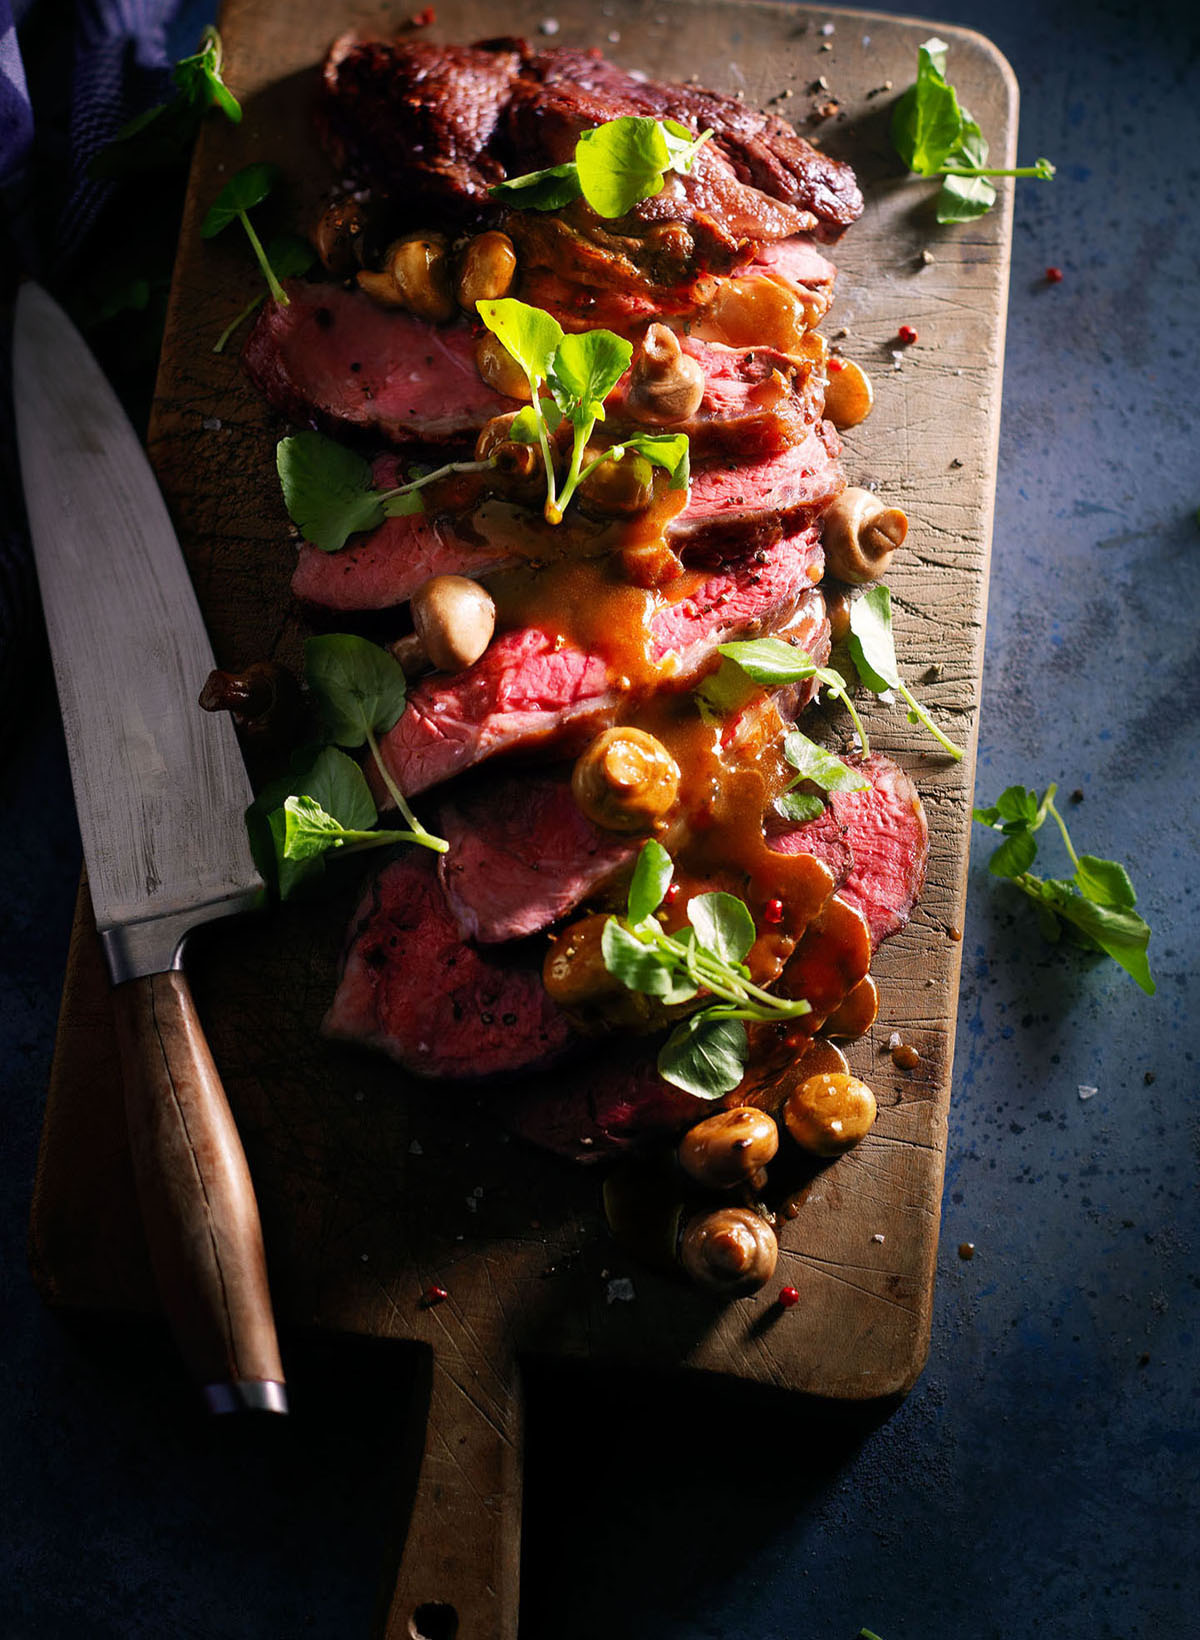 Food stylist photography of meat and mushrooms with a knife made by Studio_m Photography Amsterdam